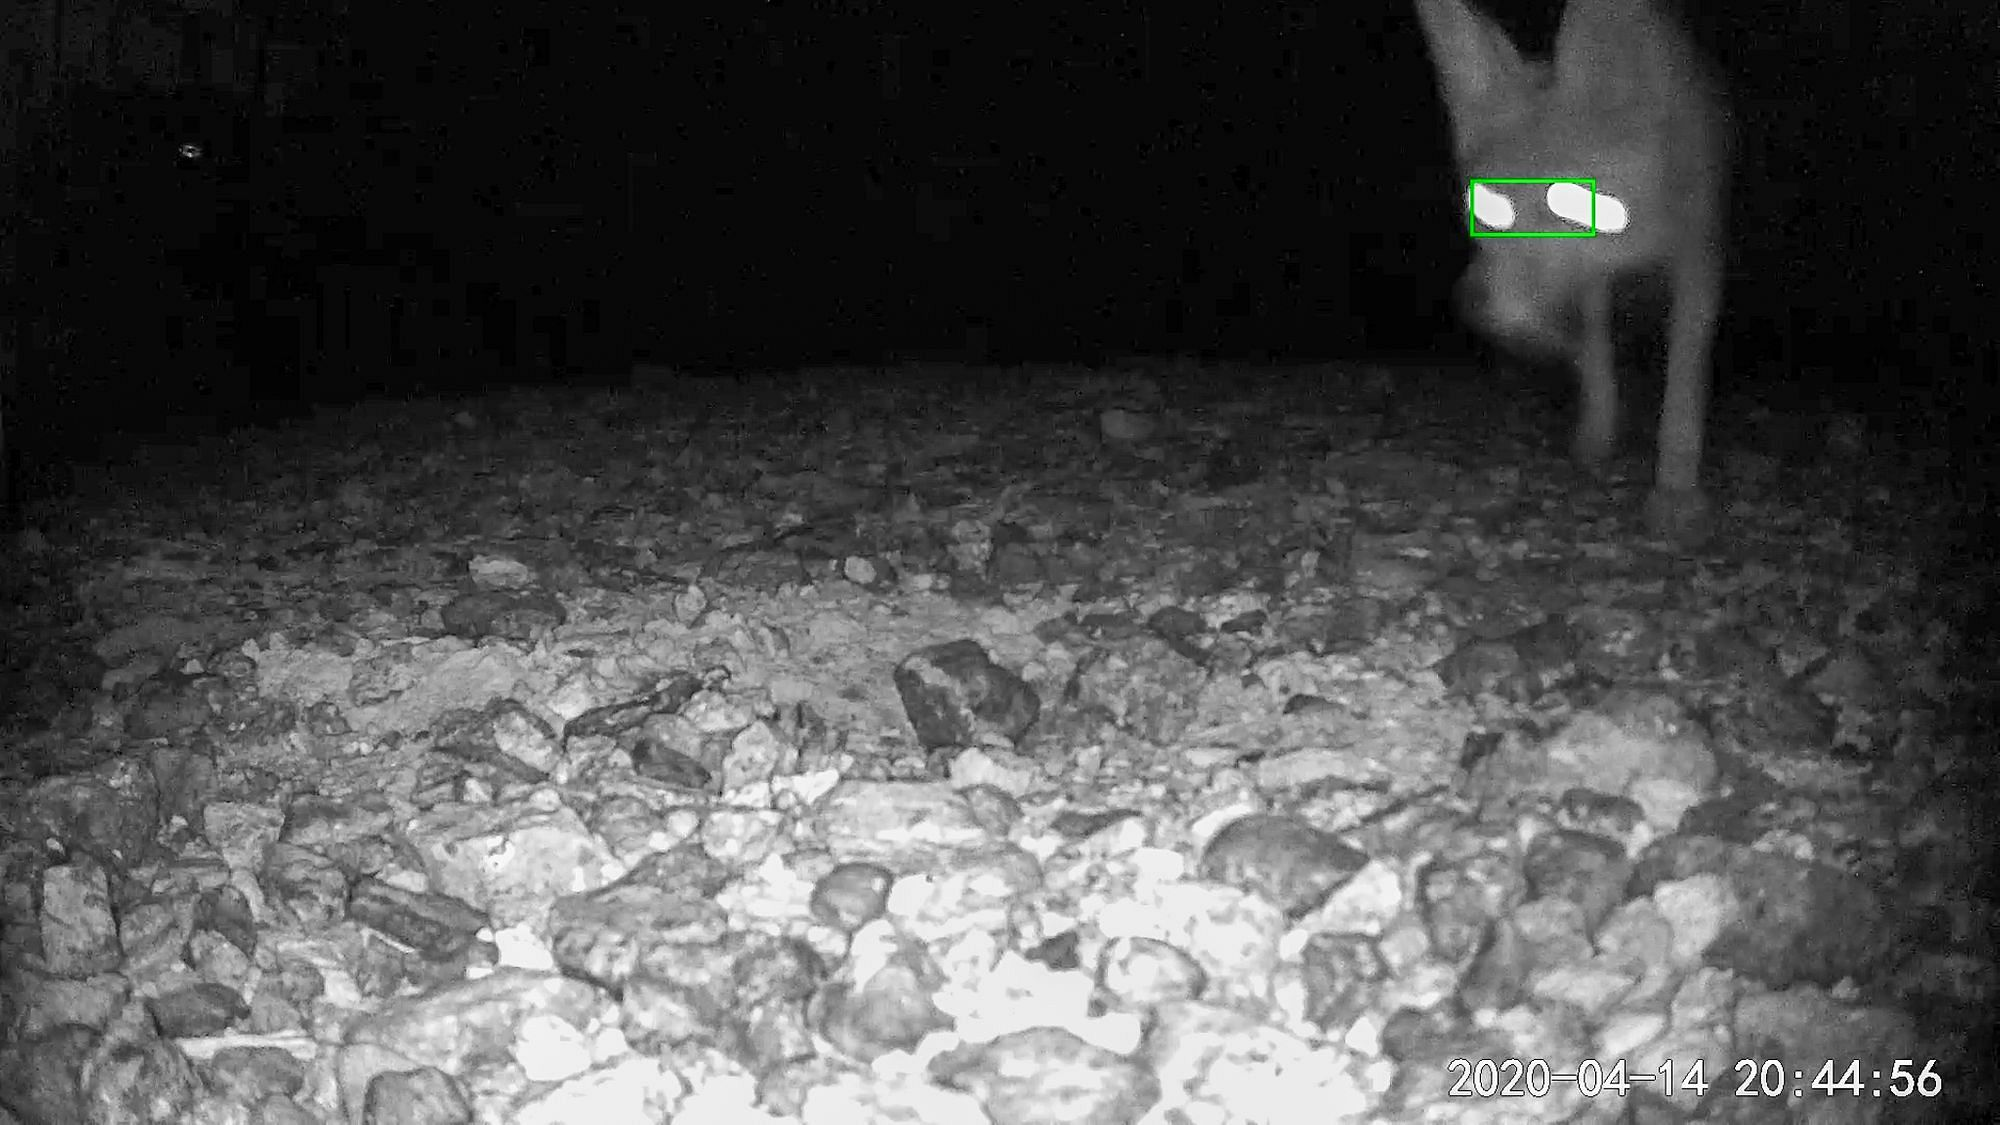 Coyote on Camera